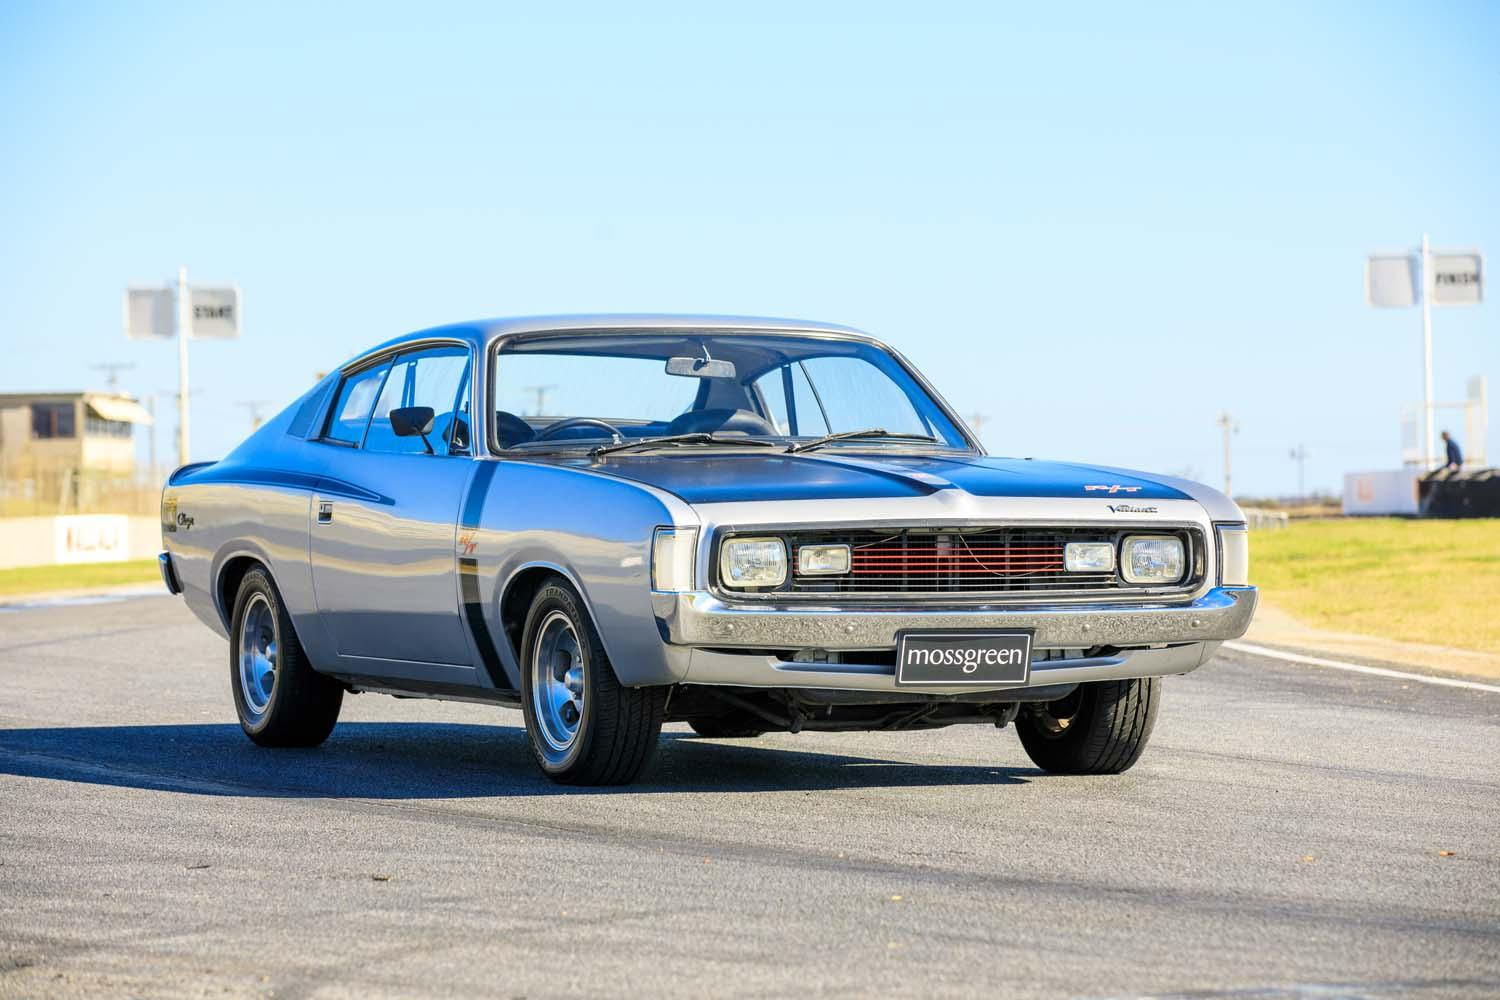 1972 Chrysler Valiant VH Charger R/T E38 Coupe